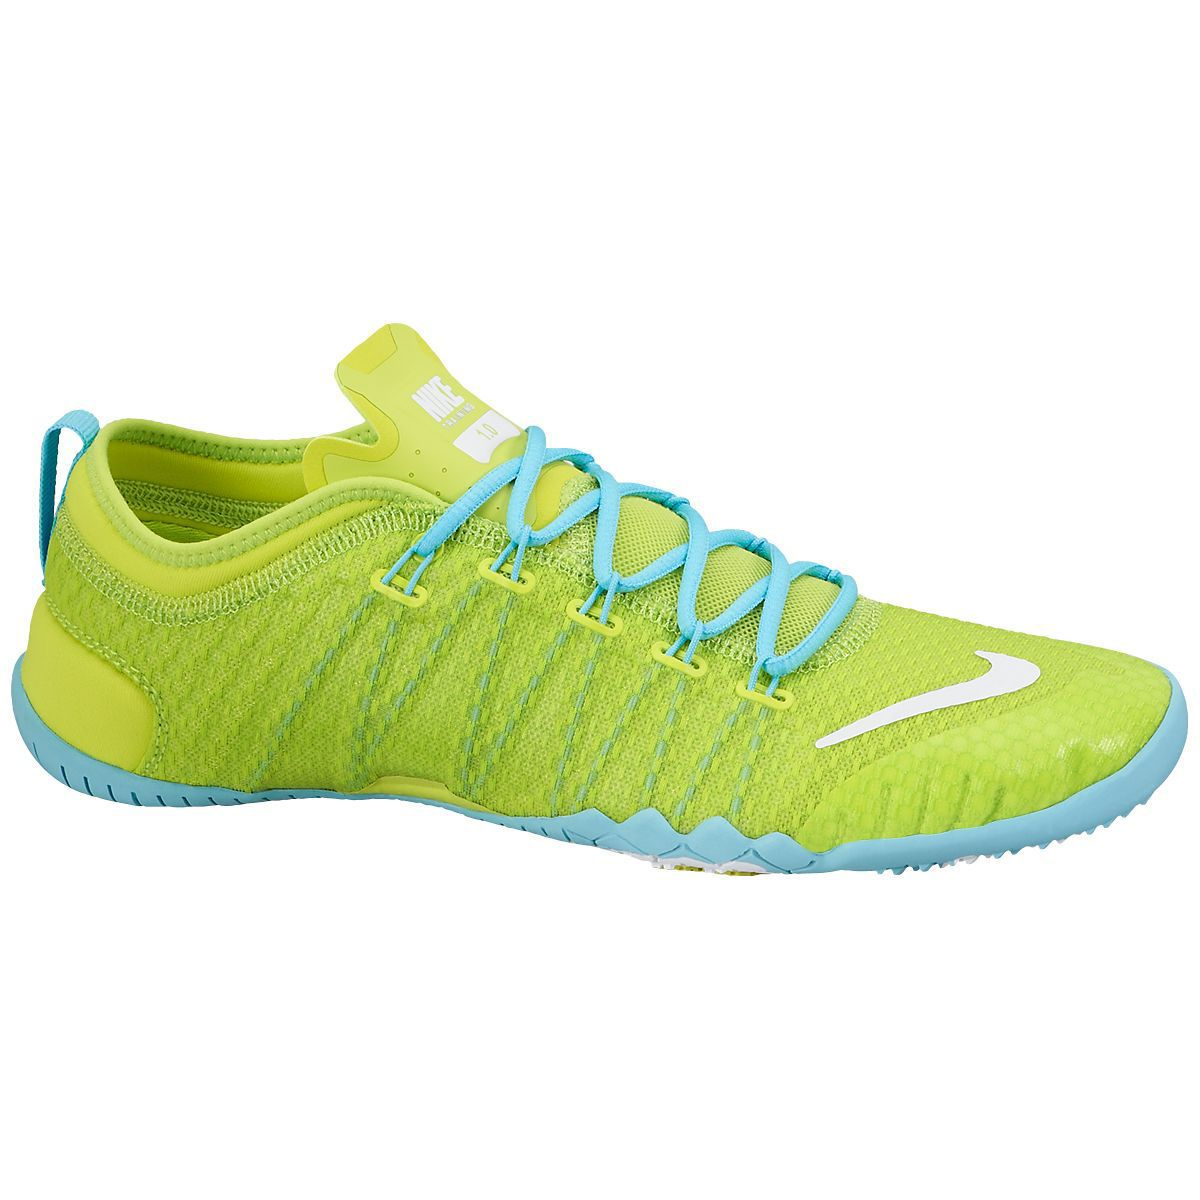 Nike Women's Free 1.0 Cross Complete Shoes - SU14 Training Running ...